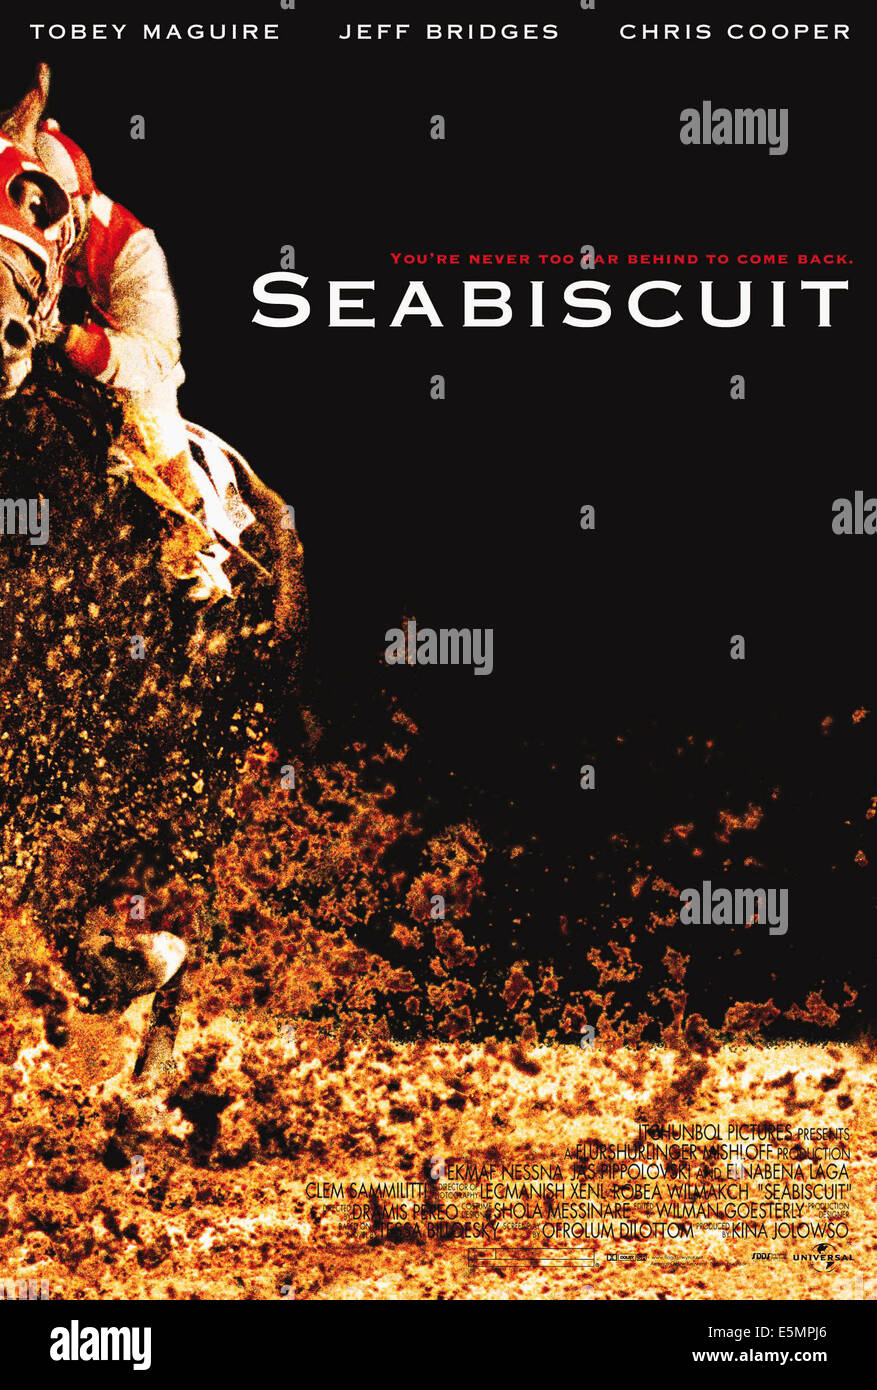 SEABISCUIT, Poster art, 2003, (c) Universal/courtesy Everett Collection - Stock Image